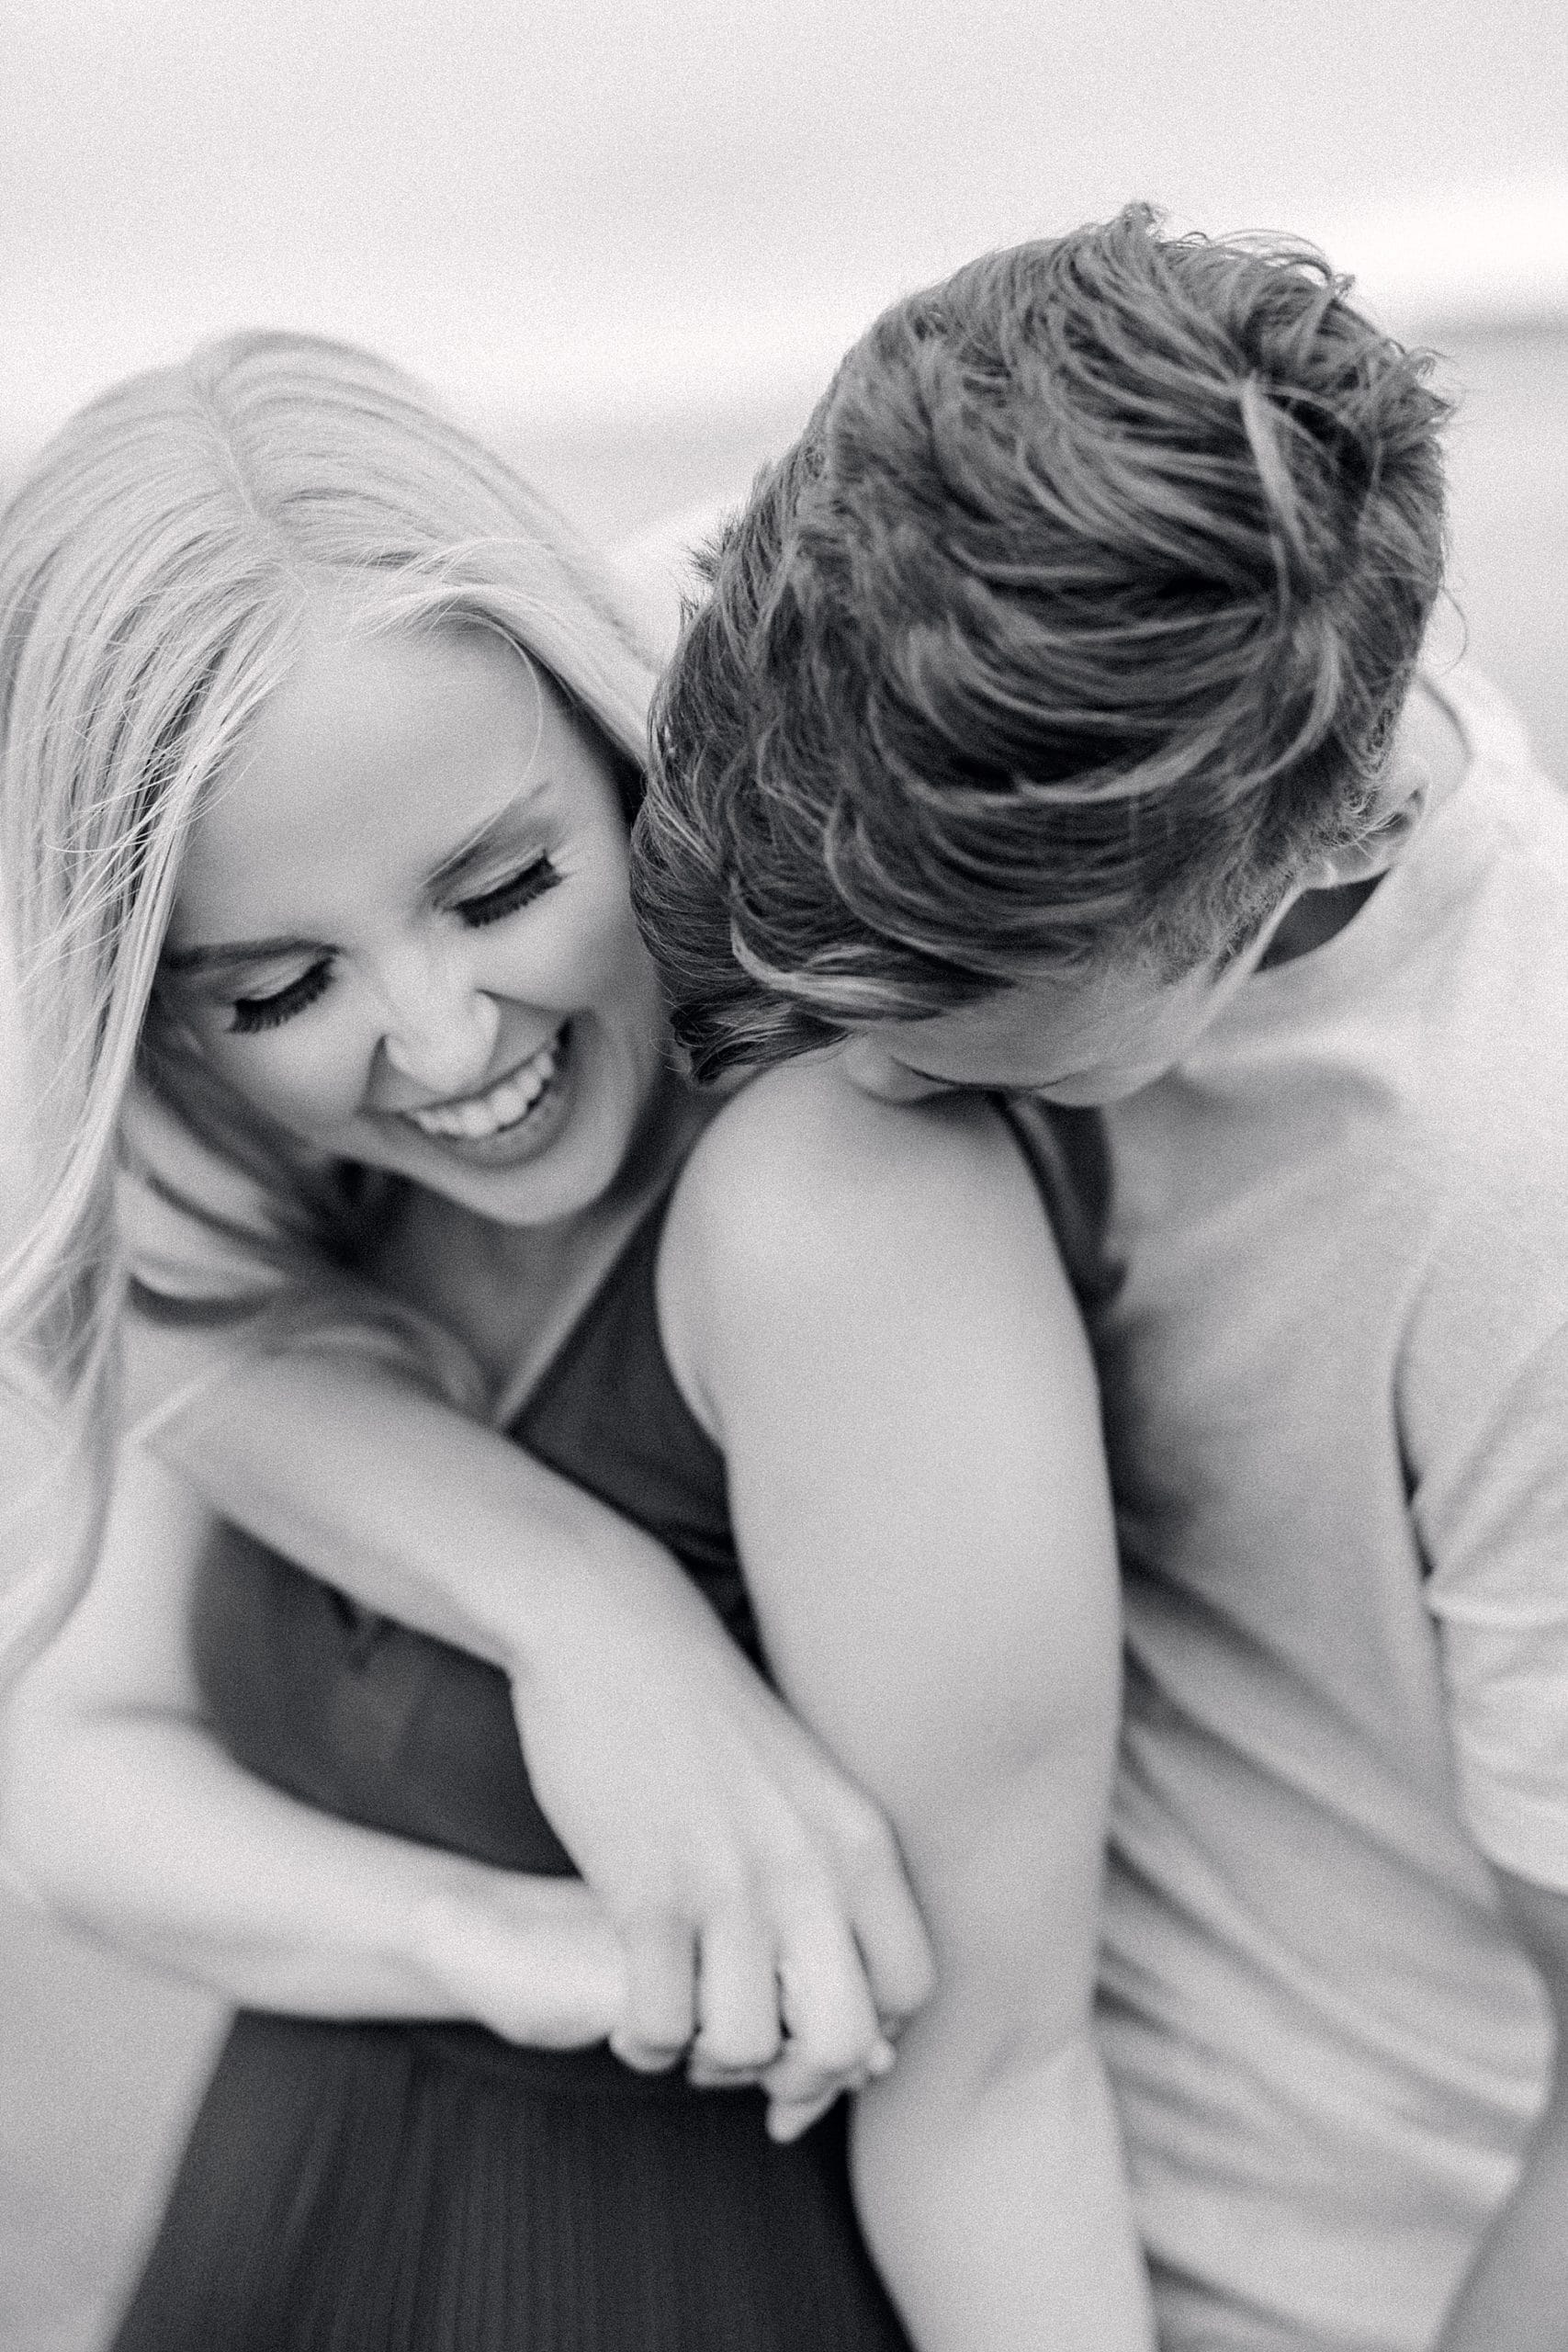 black and white image of engaged couple where the guy is kissing her shoulder